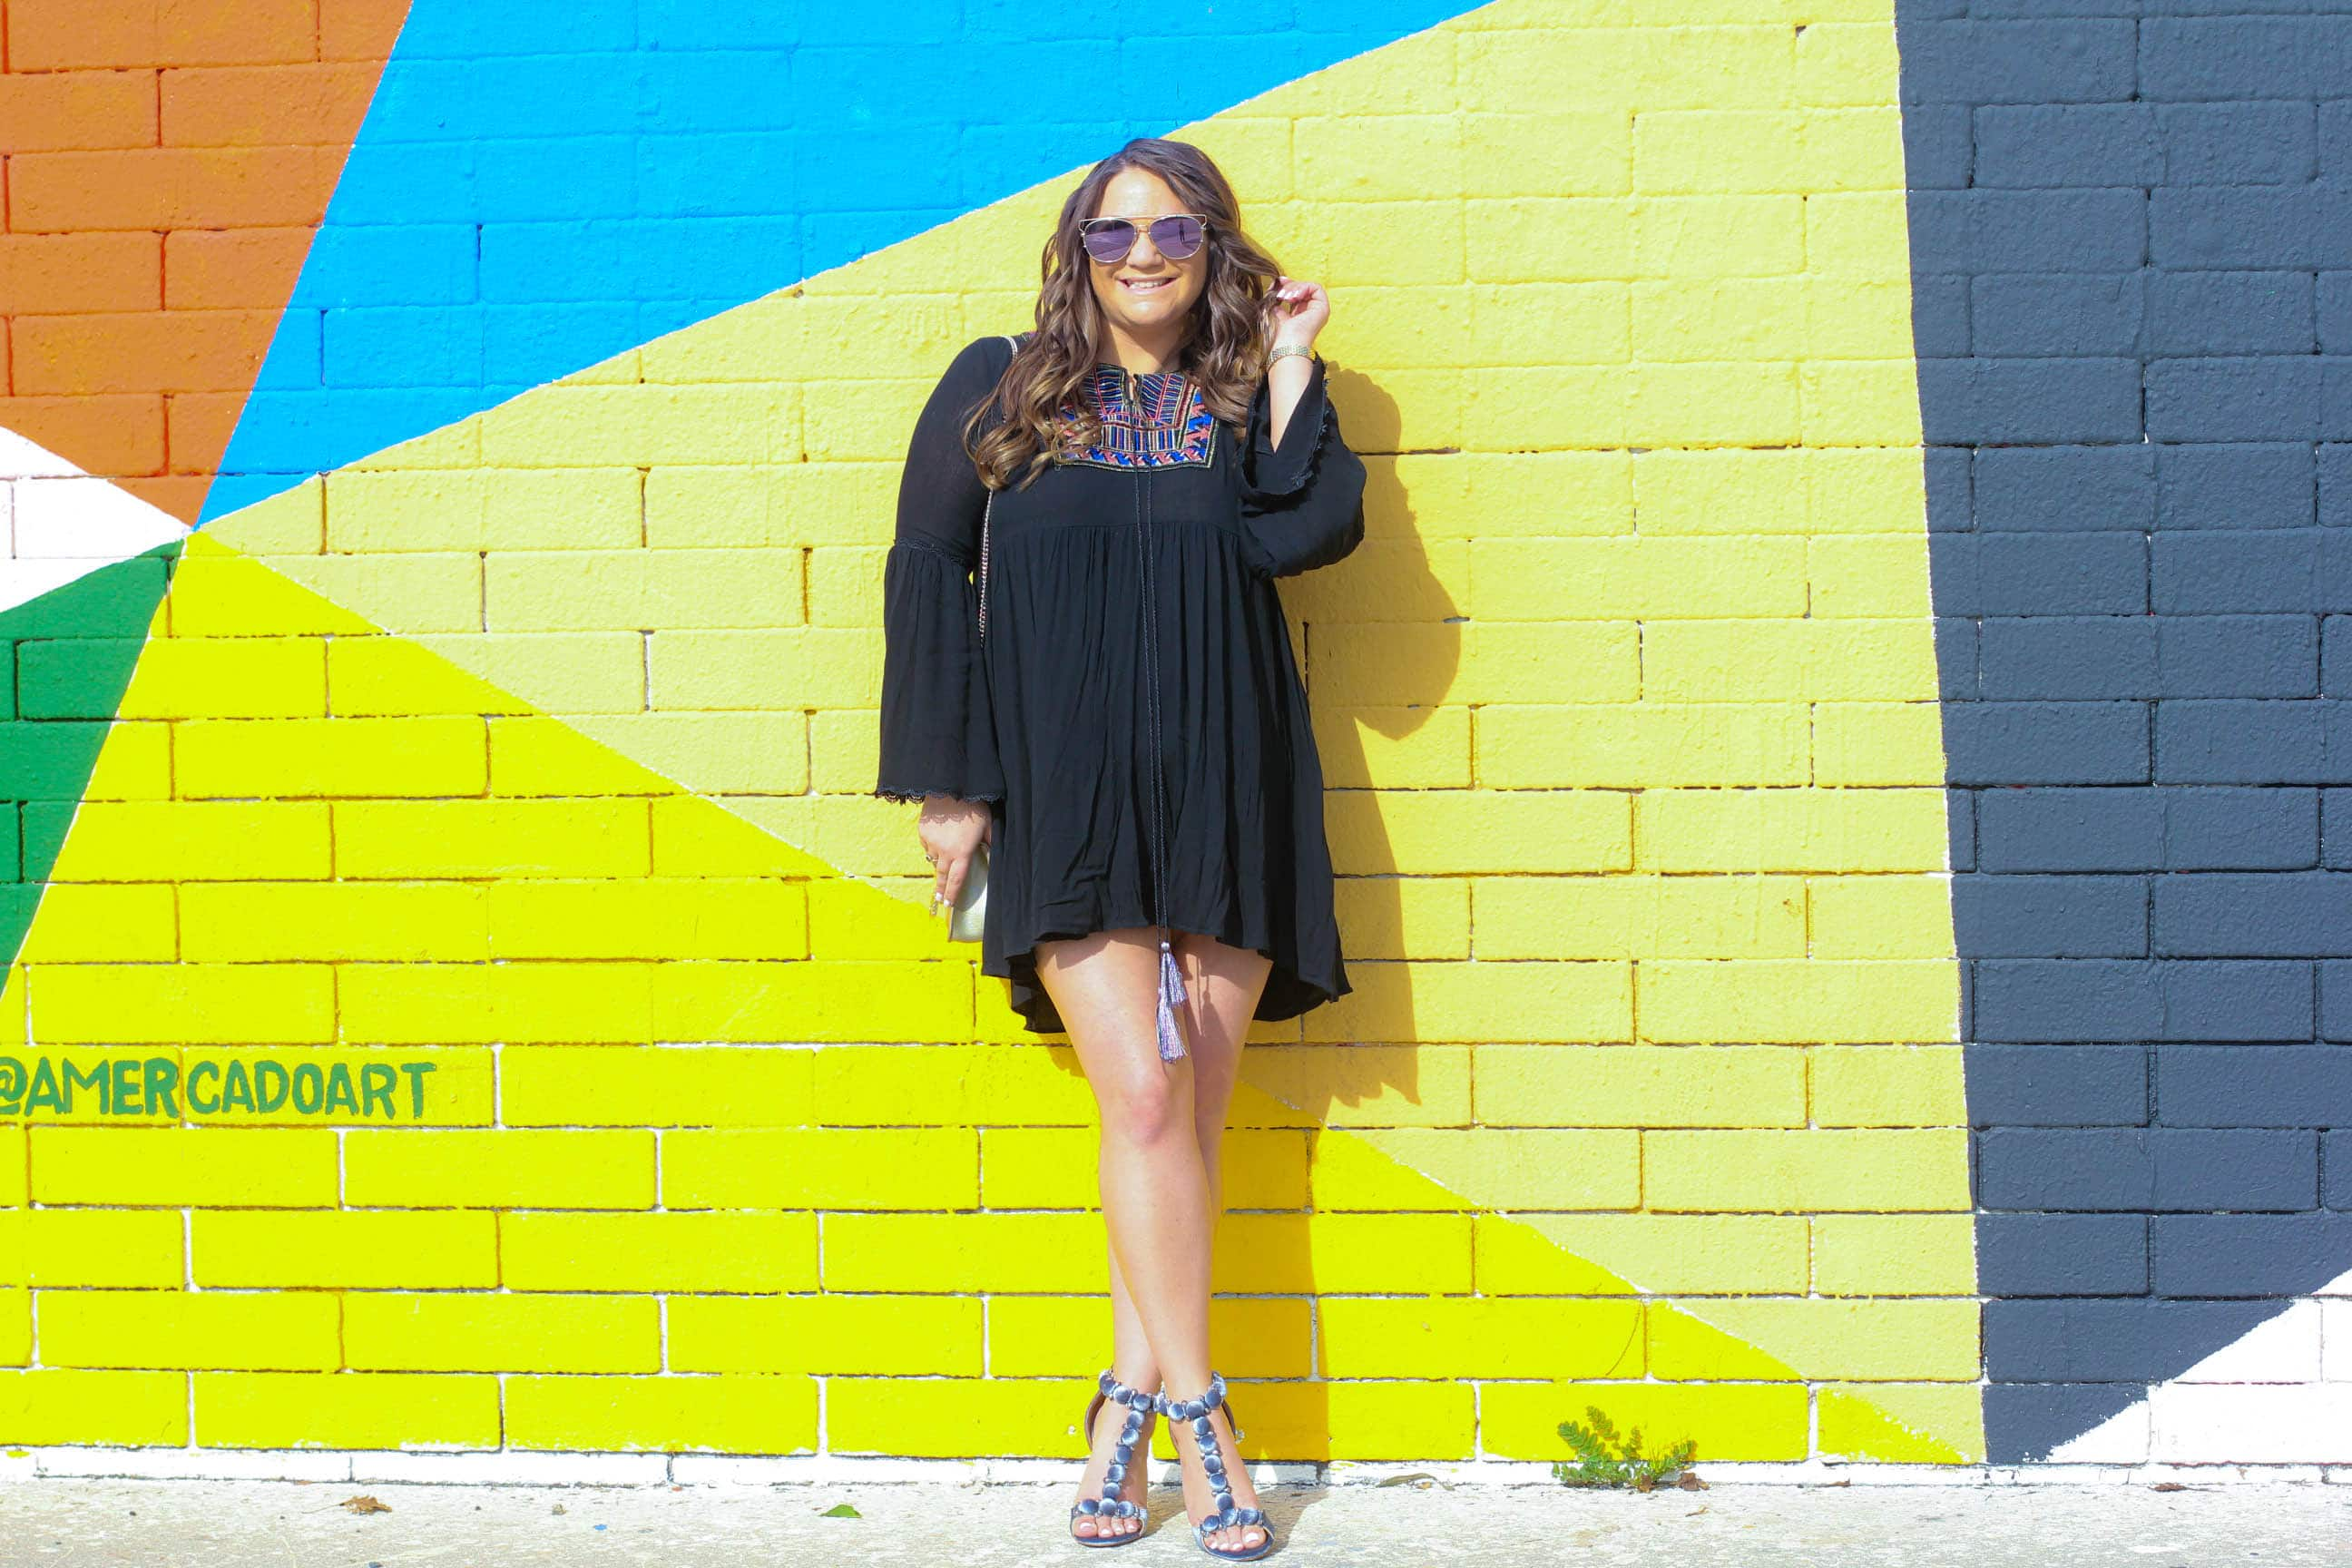 missyonmadison, melissa tierney, high heels, she is chic, she is shic, shoe goals, strappy sandals, fashion blogger, style blogger, la blogger, black tribal dress, shein, black embroidered dress, mirrored aviators, gold bag, gold crossbody bag, la walls, wall crawl, la murals, la street art,